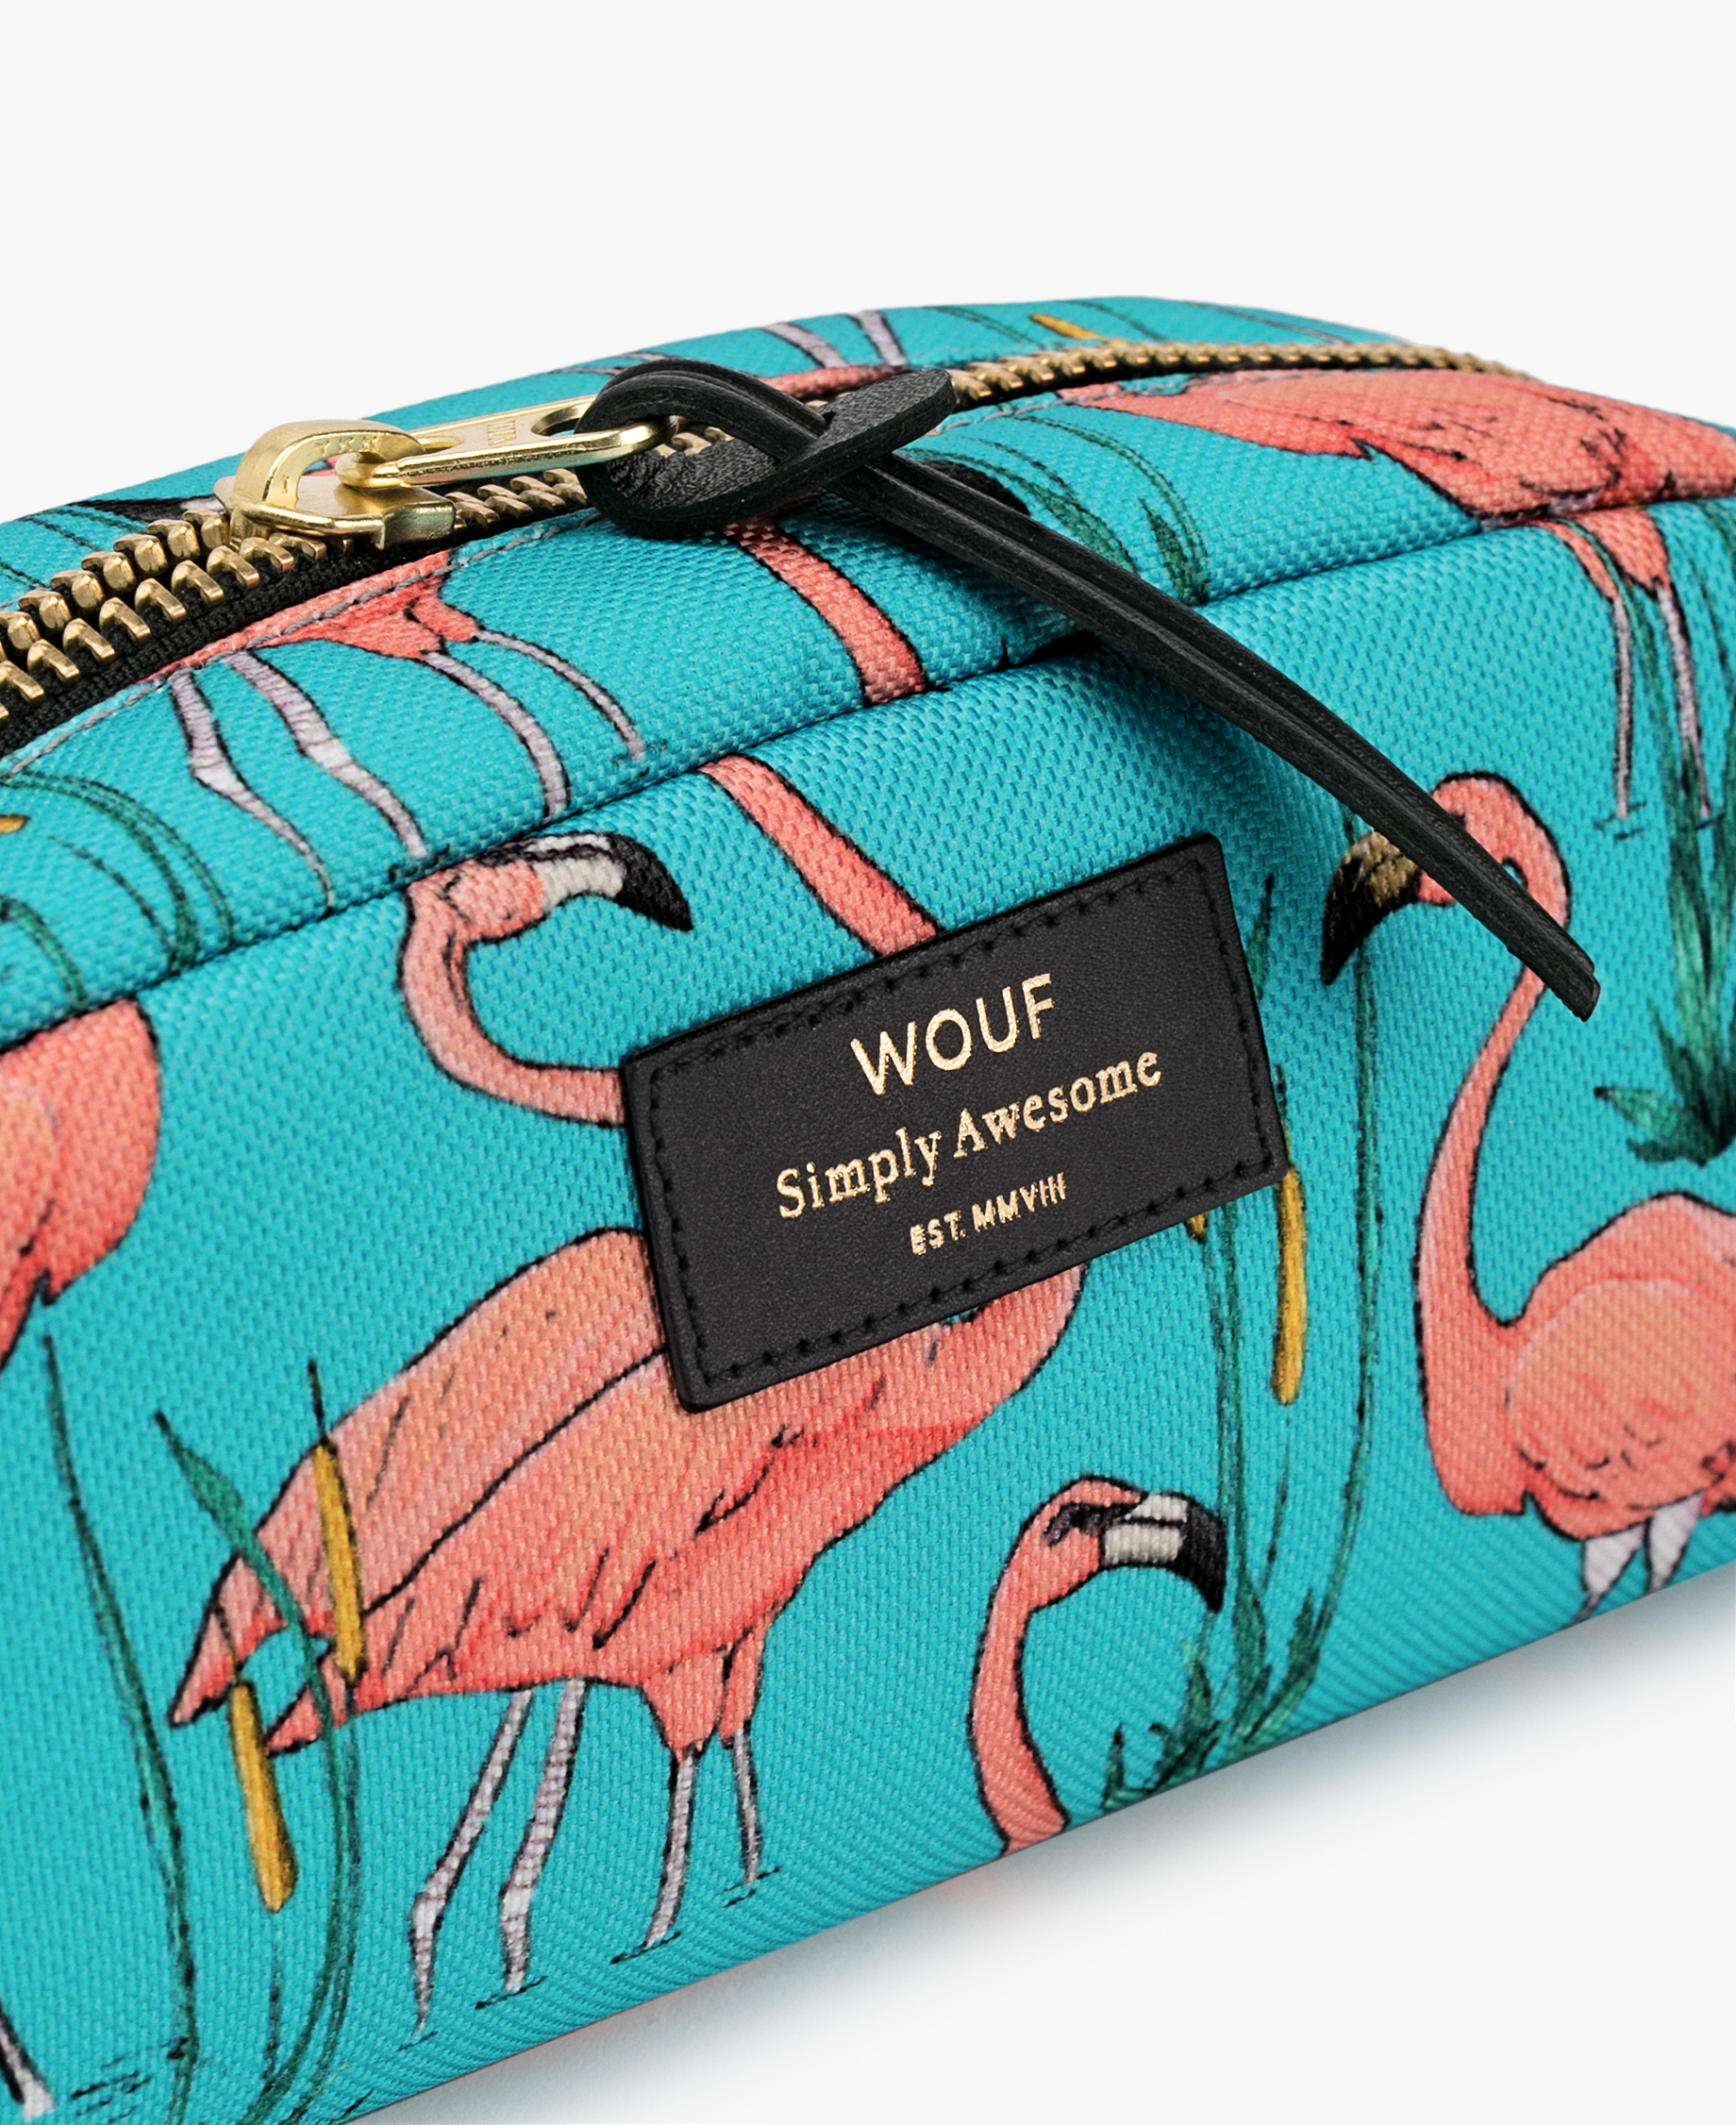 chic toiletry bag